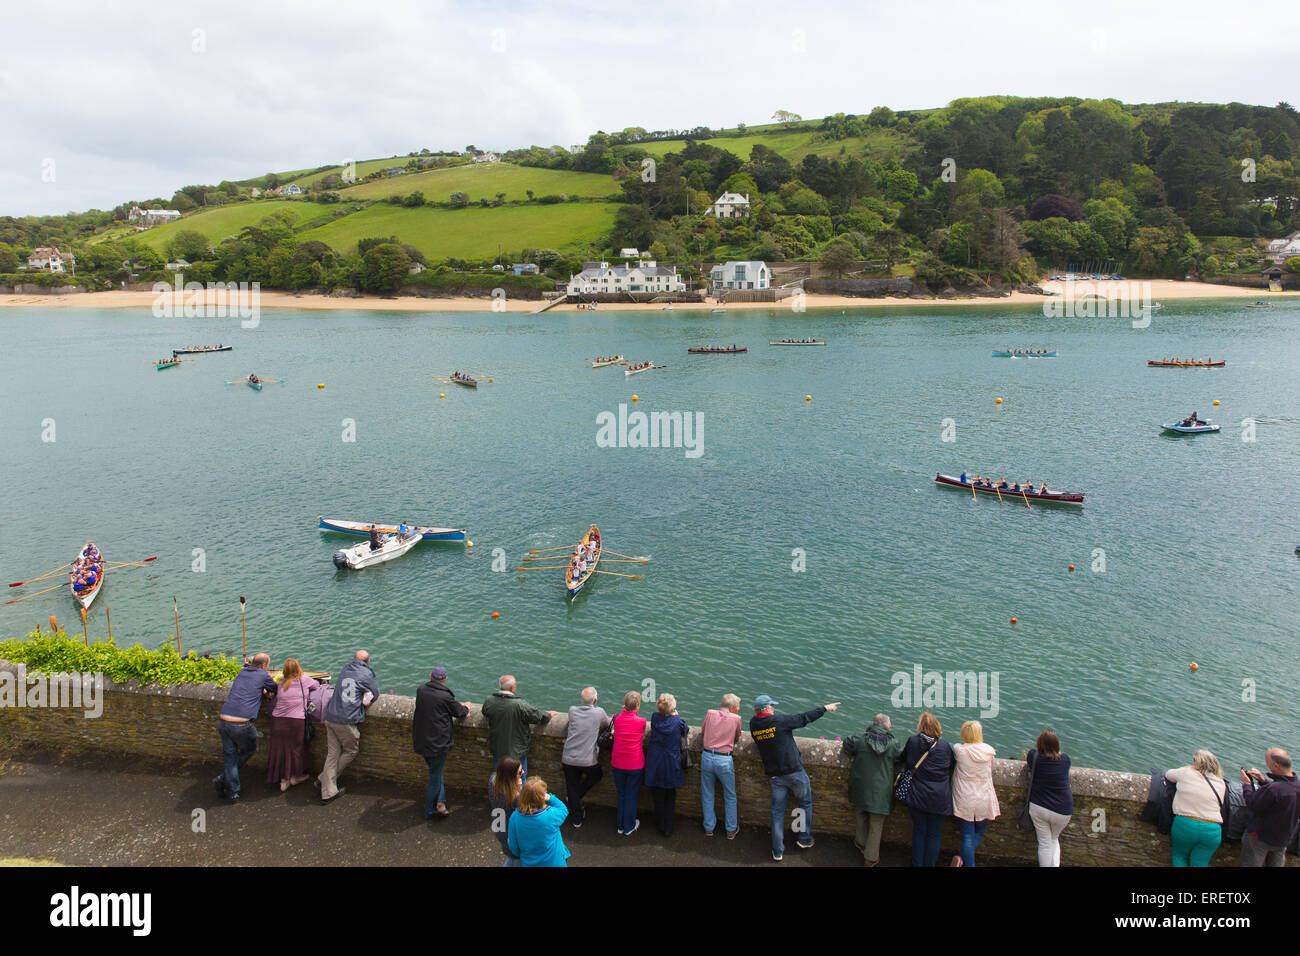 Pilot Gig boat racing rowing event at Salcombe Devon on Sunday 31st May 2015 - Stock Image